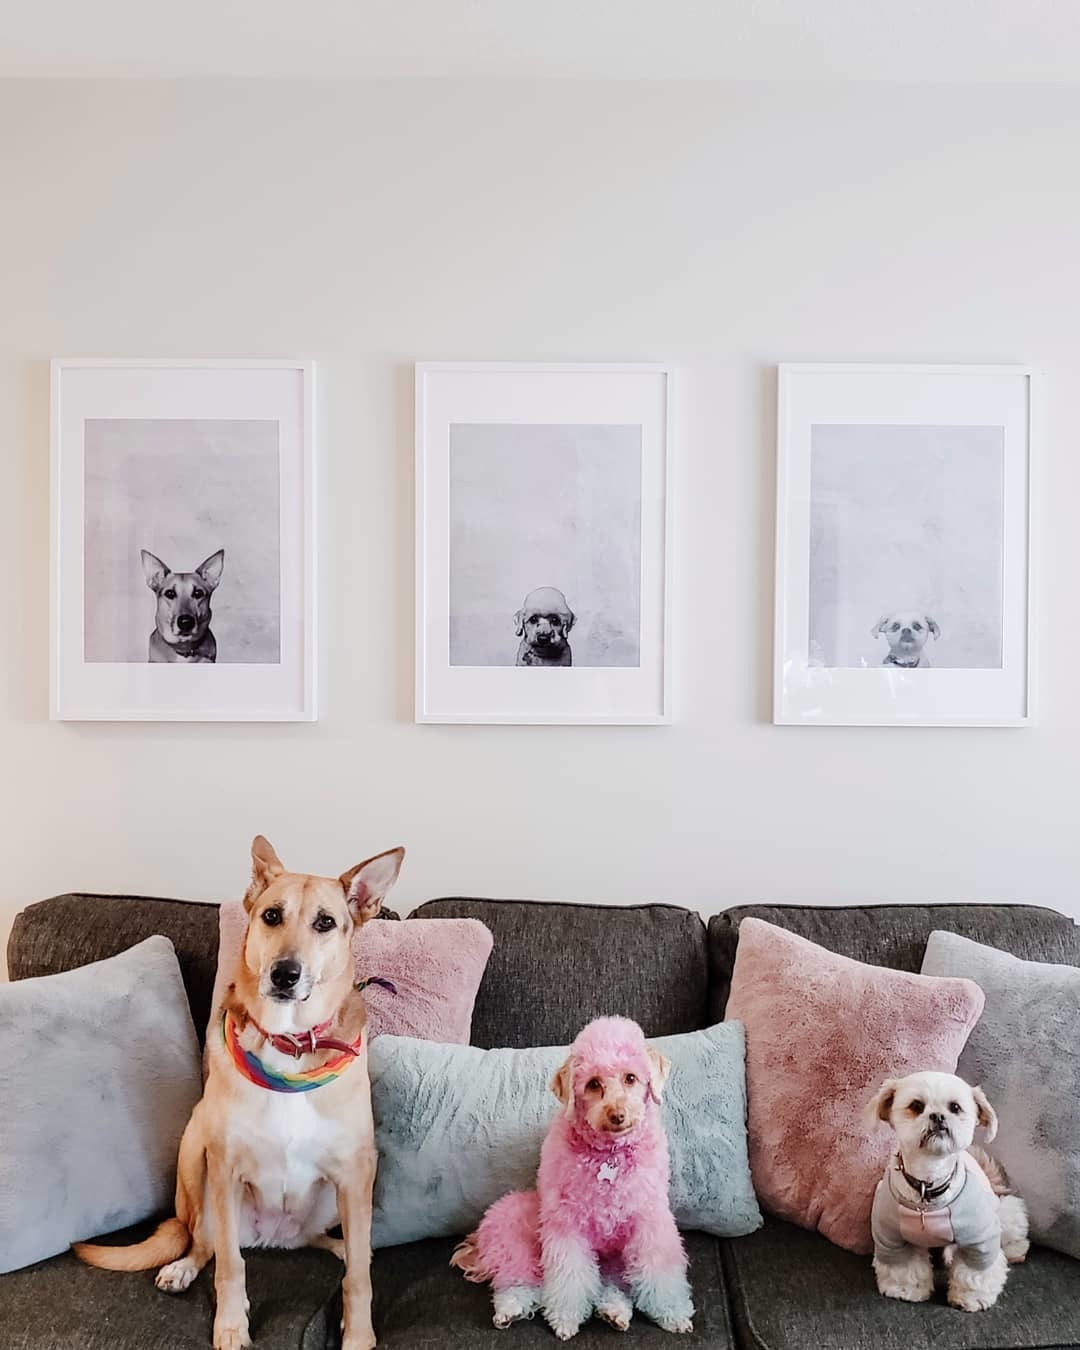 Gallery Wall of Framed Prints of Dogs